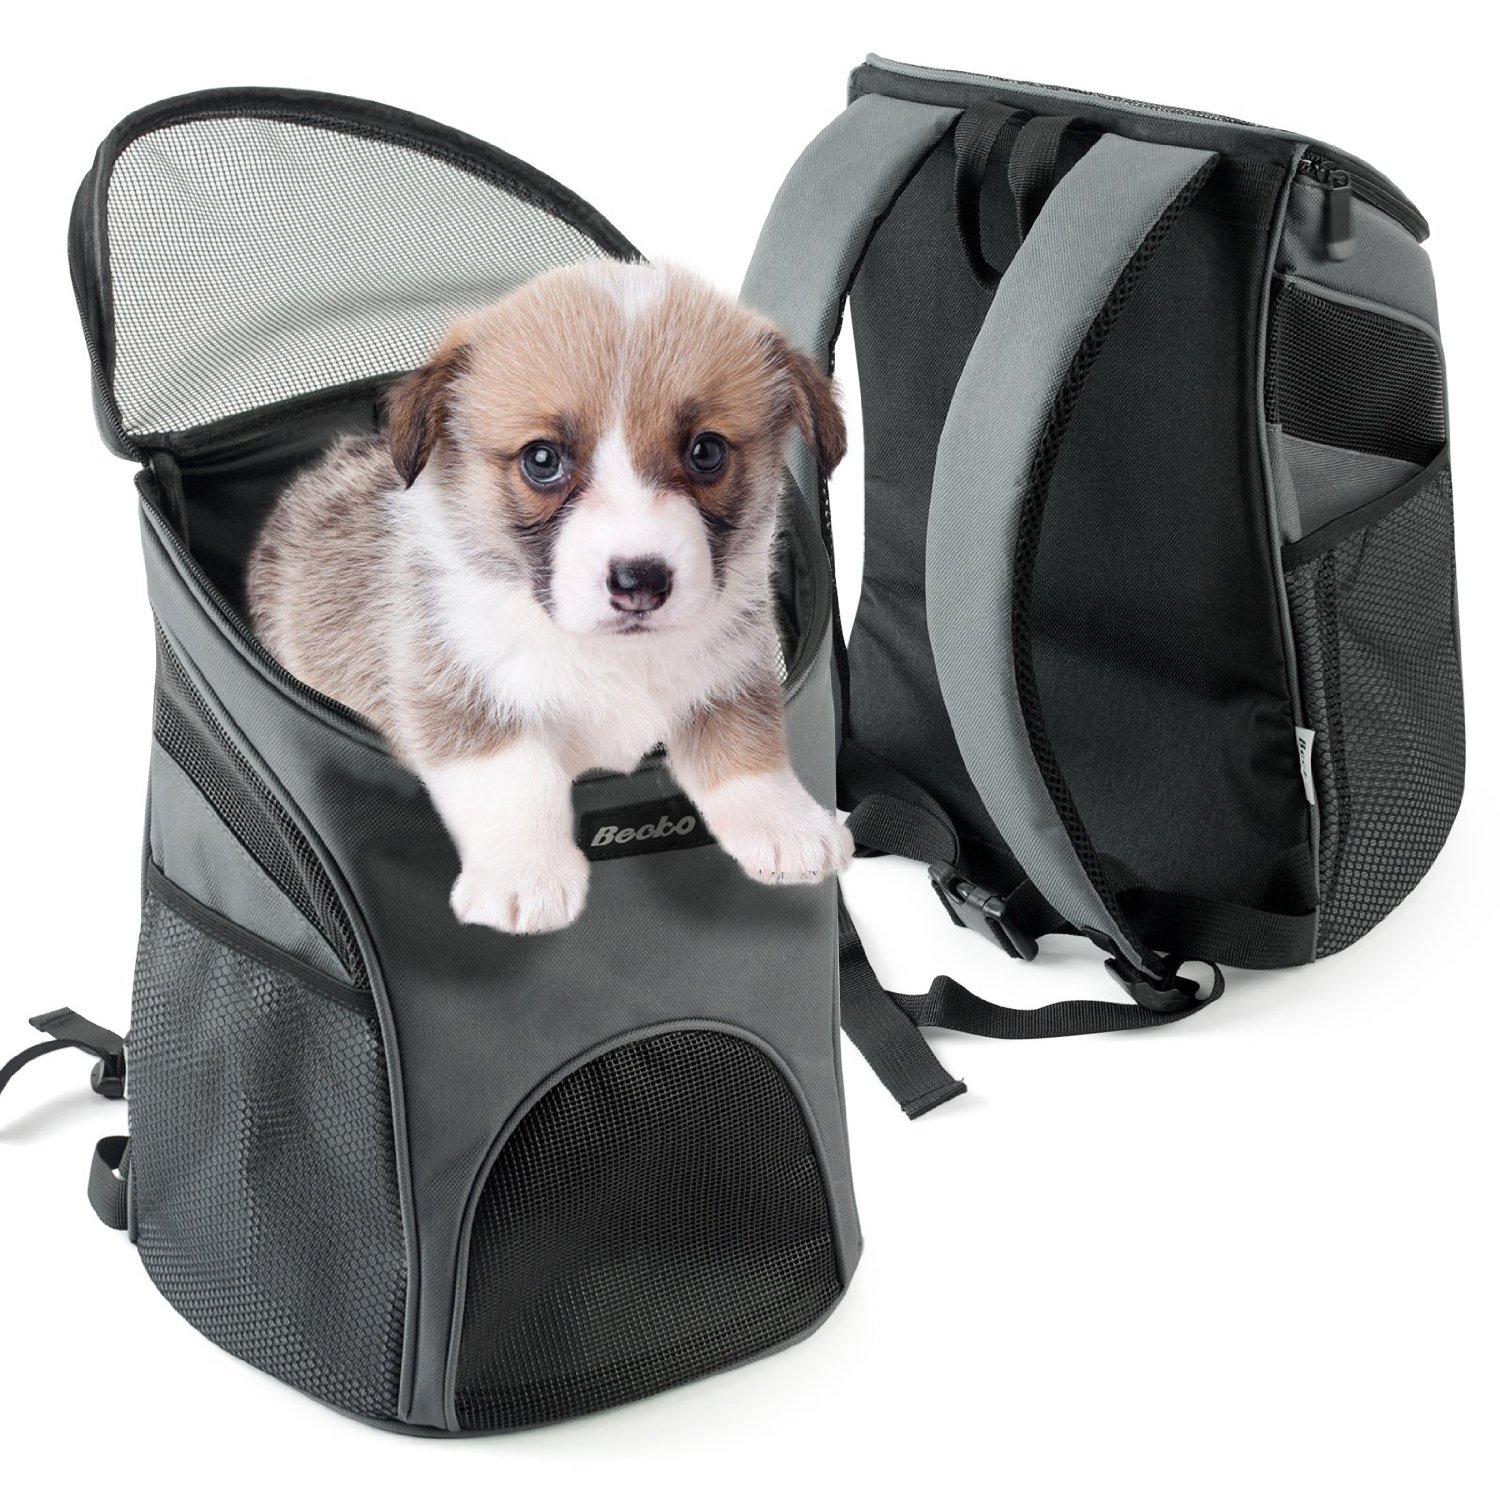 MY DAYS Free Shiping Backpack For Pets Dog Bags Travel Outdoor Colorful Cat Carrier Breathable Mesh Portable Double Shoulder Bag In Climbing From